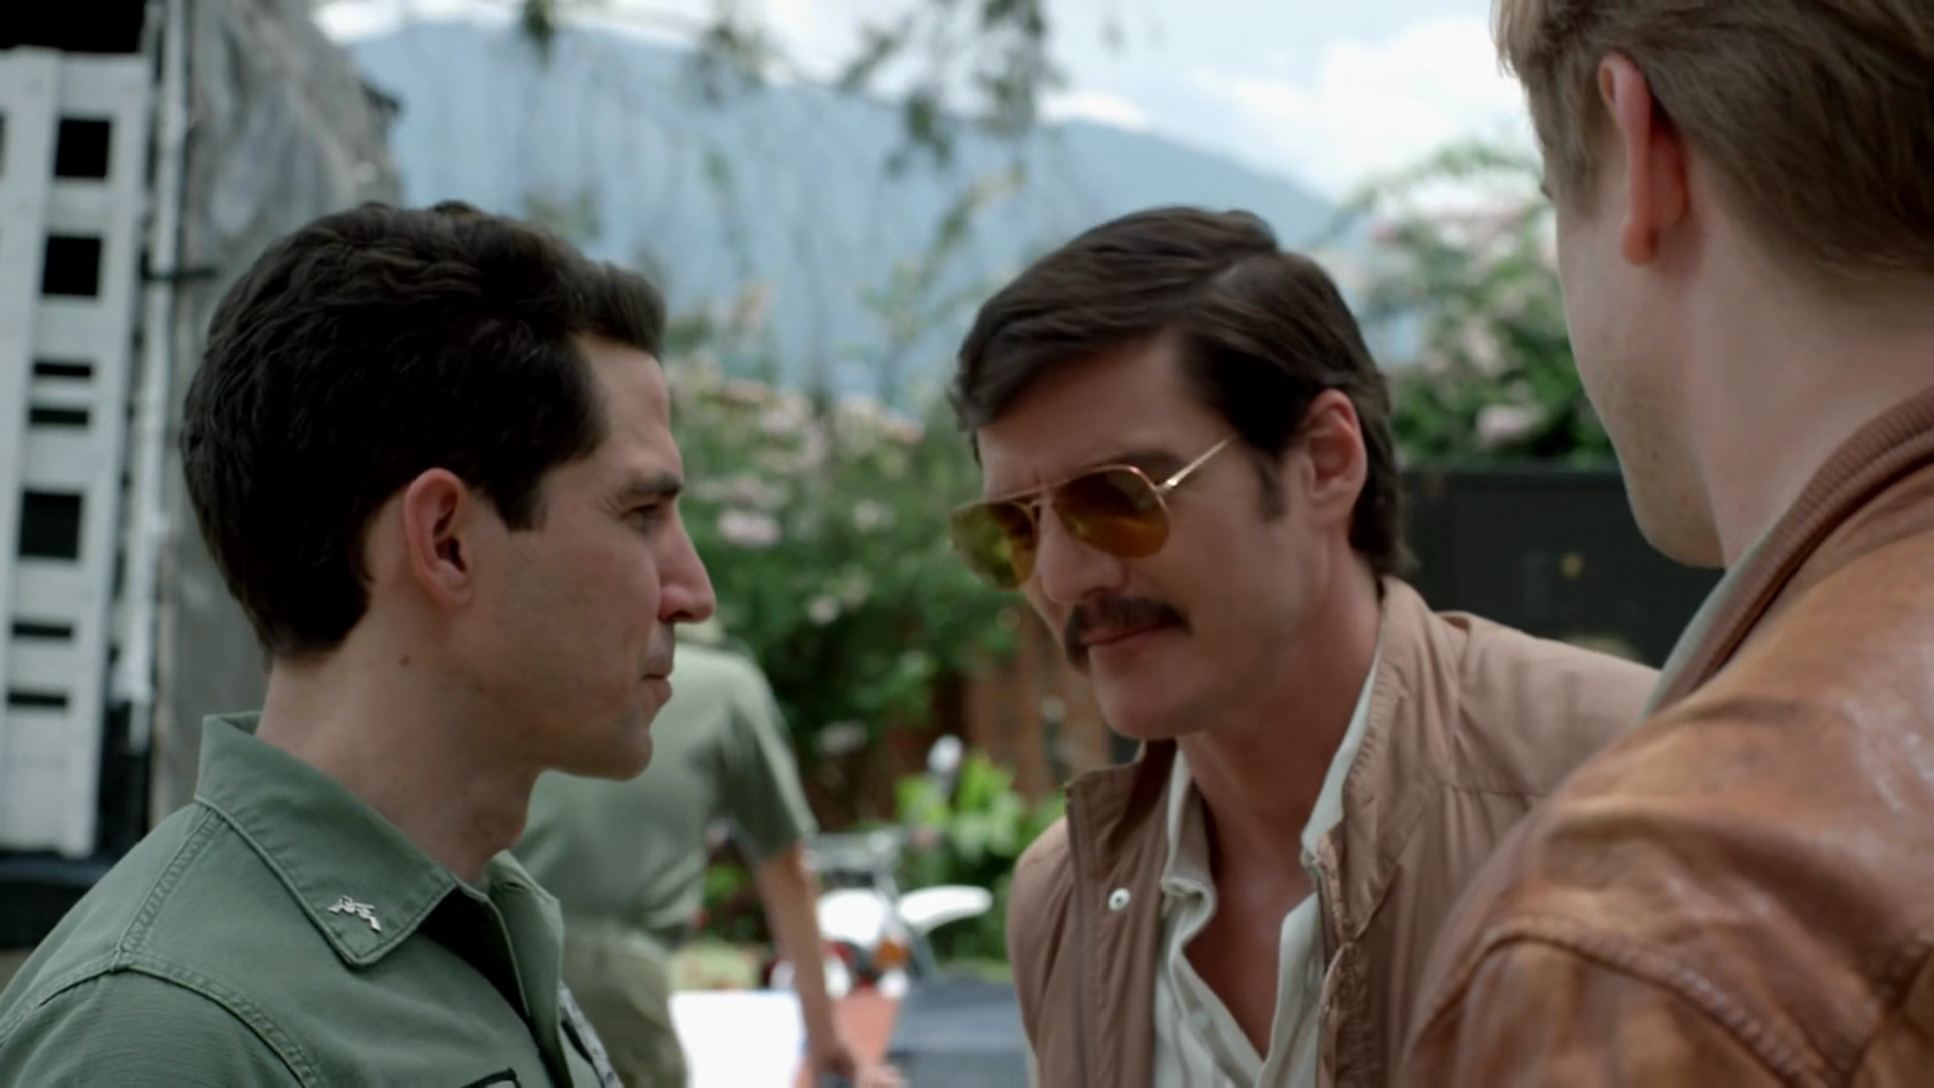 Narcos Season 1 Episode 2